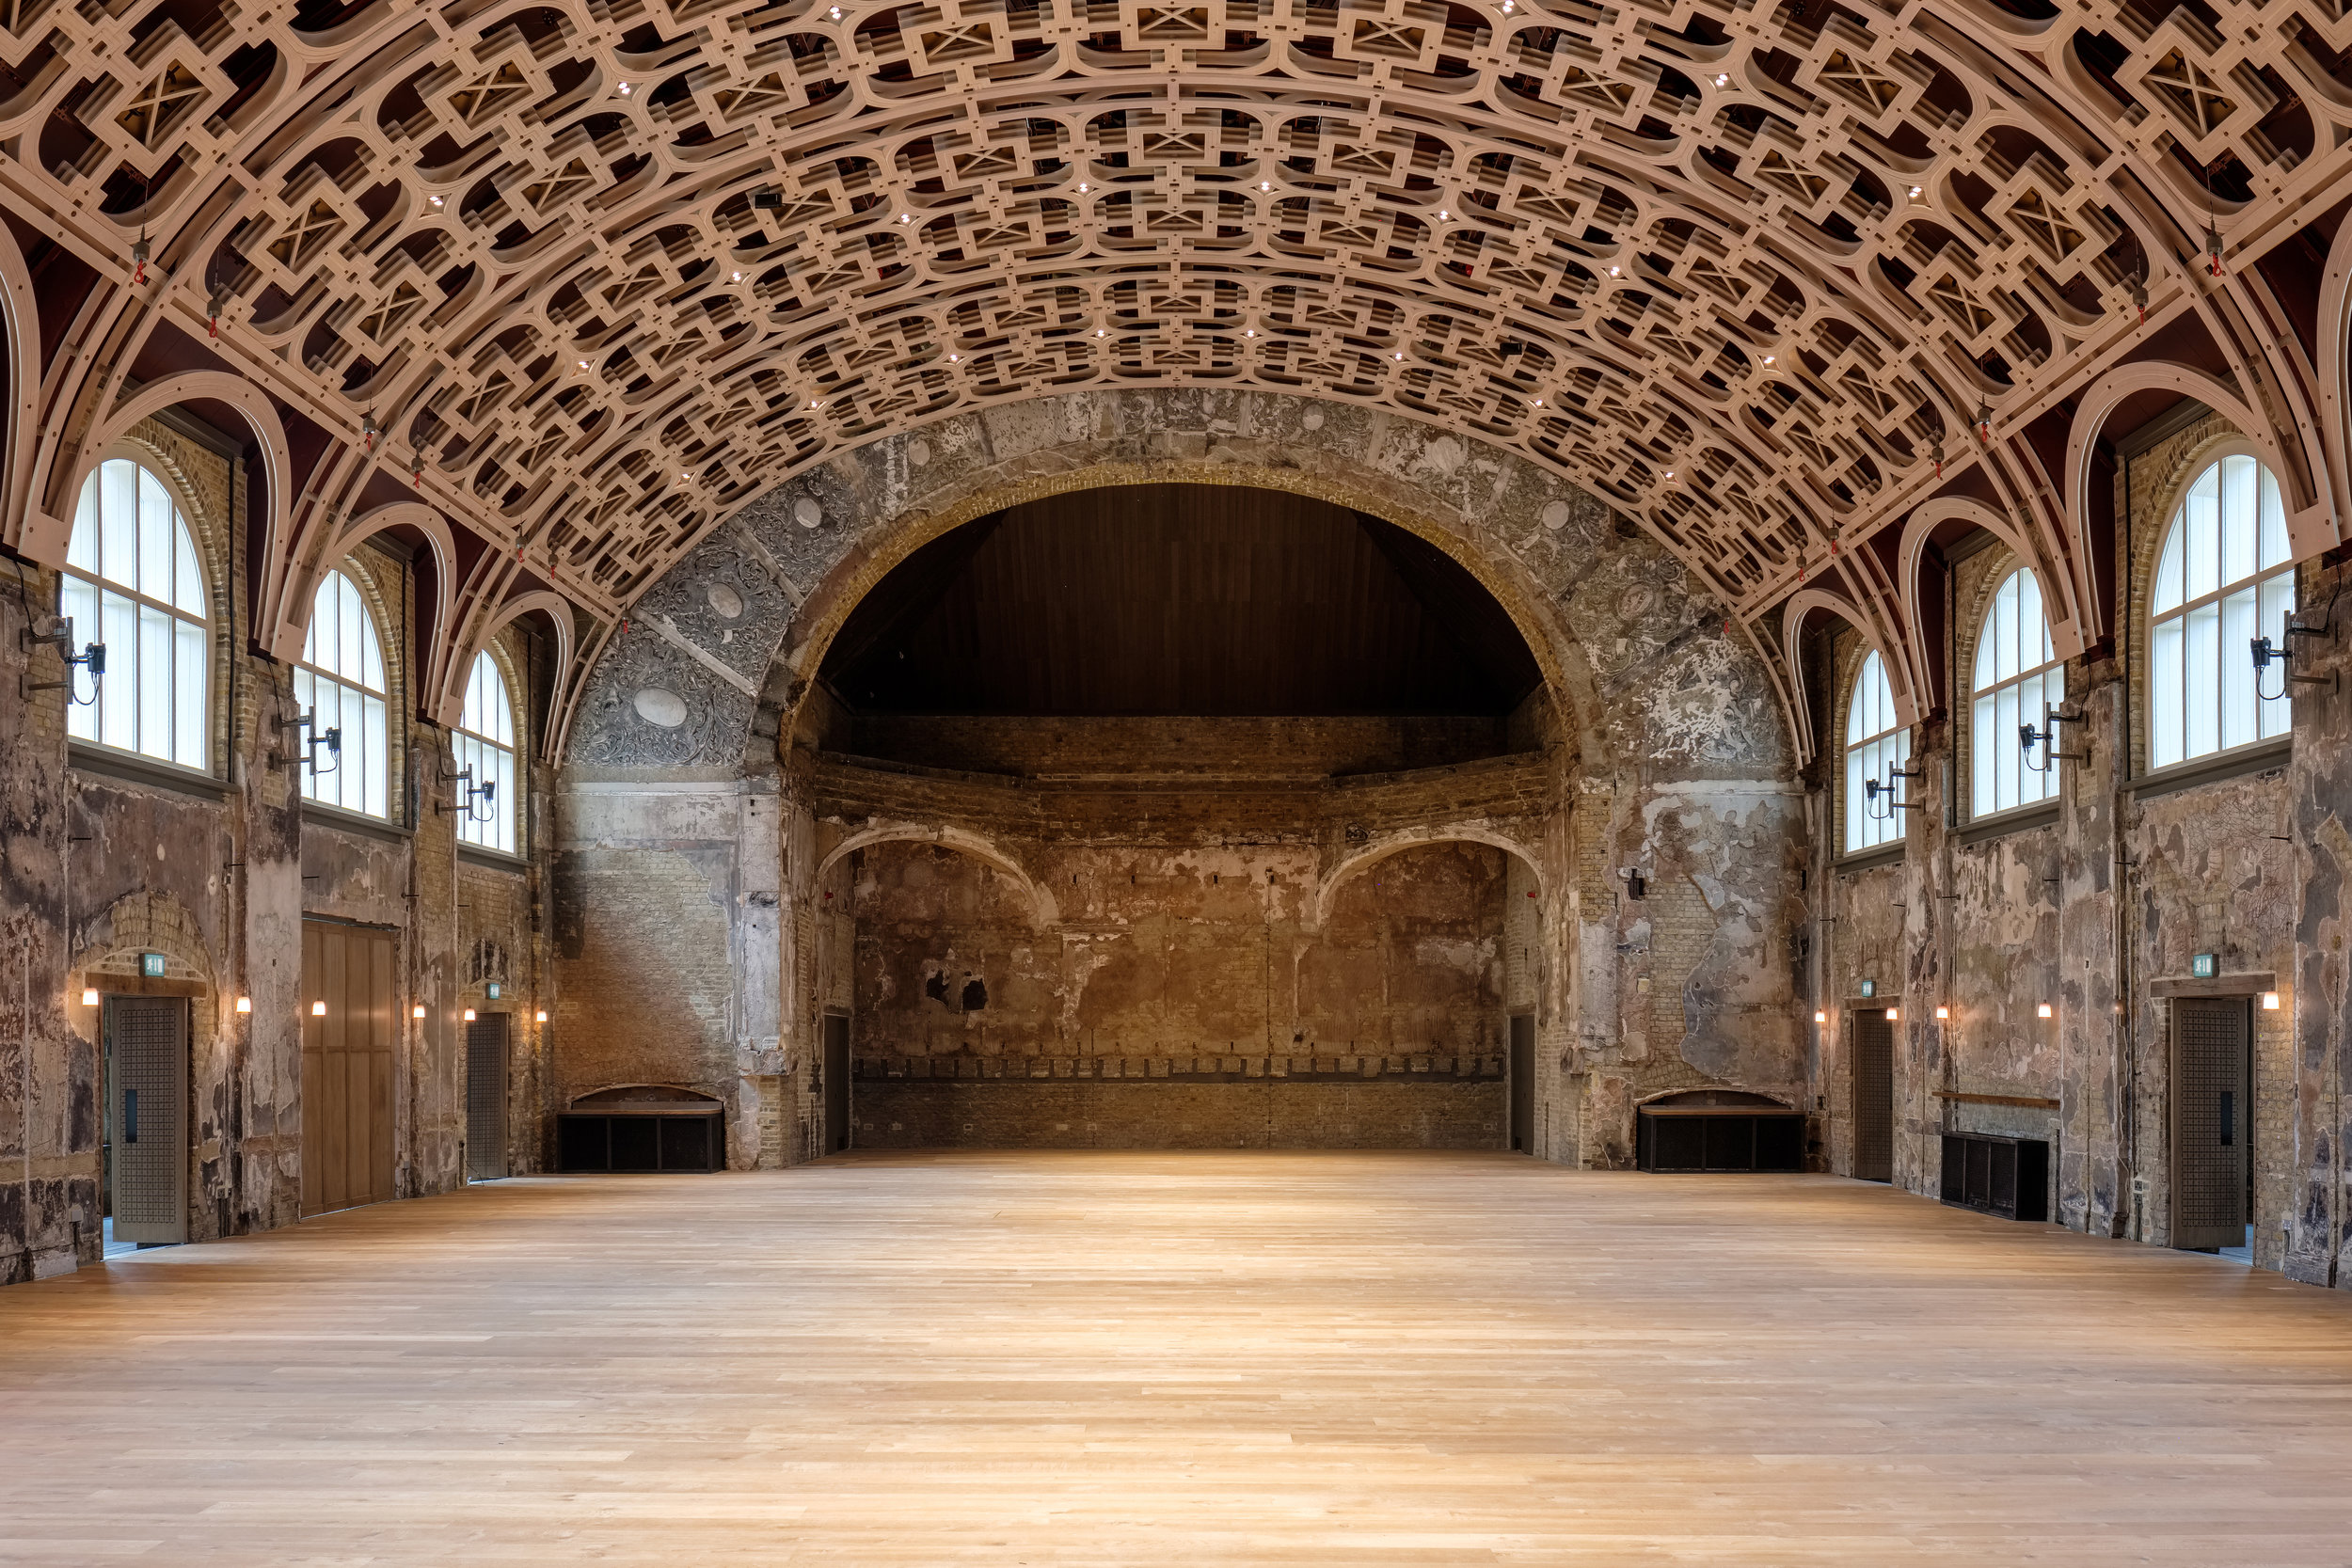 Fred+Howarth+Photography_Battersea+Arts+Centre_01.jpg